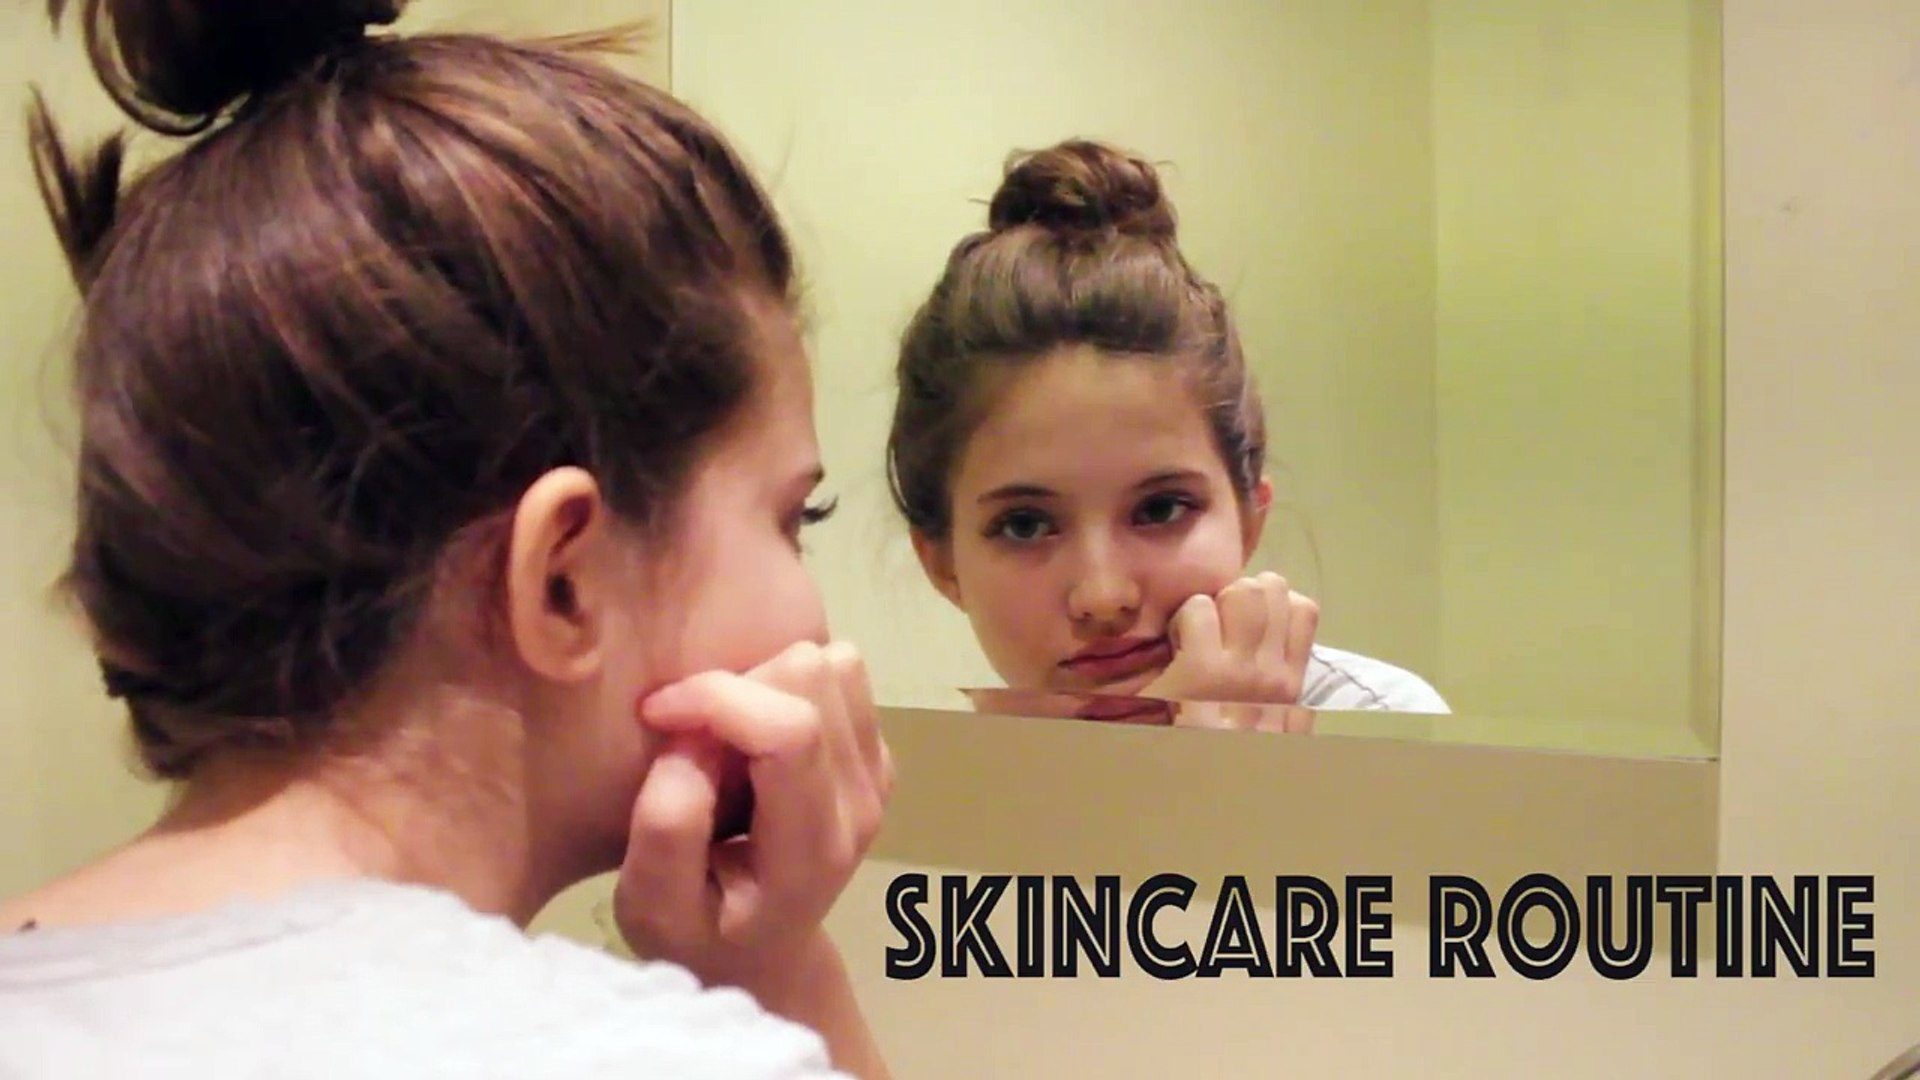 HOW TO GET BOMB SKIN _ BEST SKINCARE ROUTINE 2018